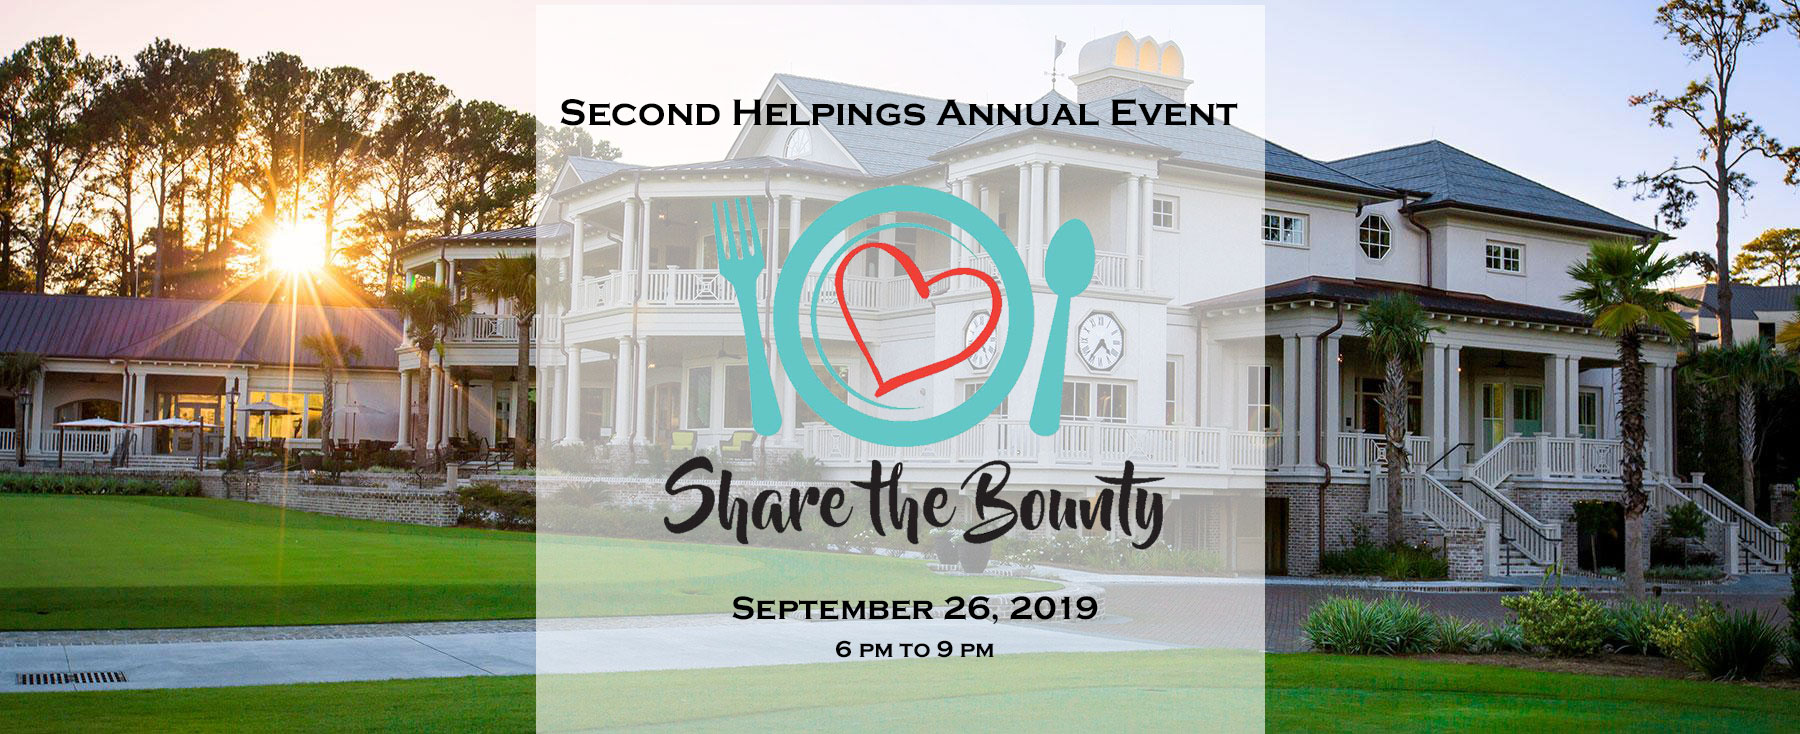 Share the Bounty 2019 at the Harbour Town Golf Links Clubhouse